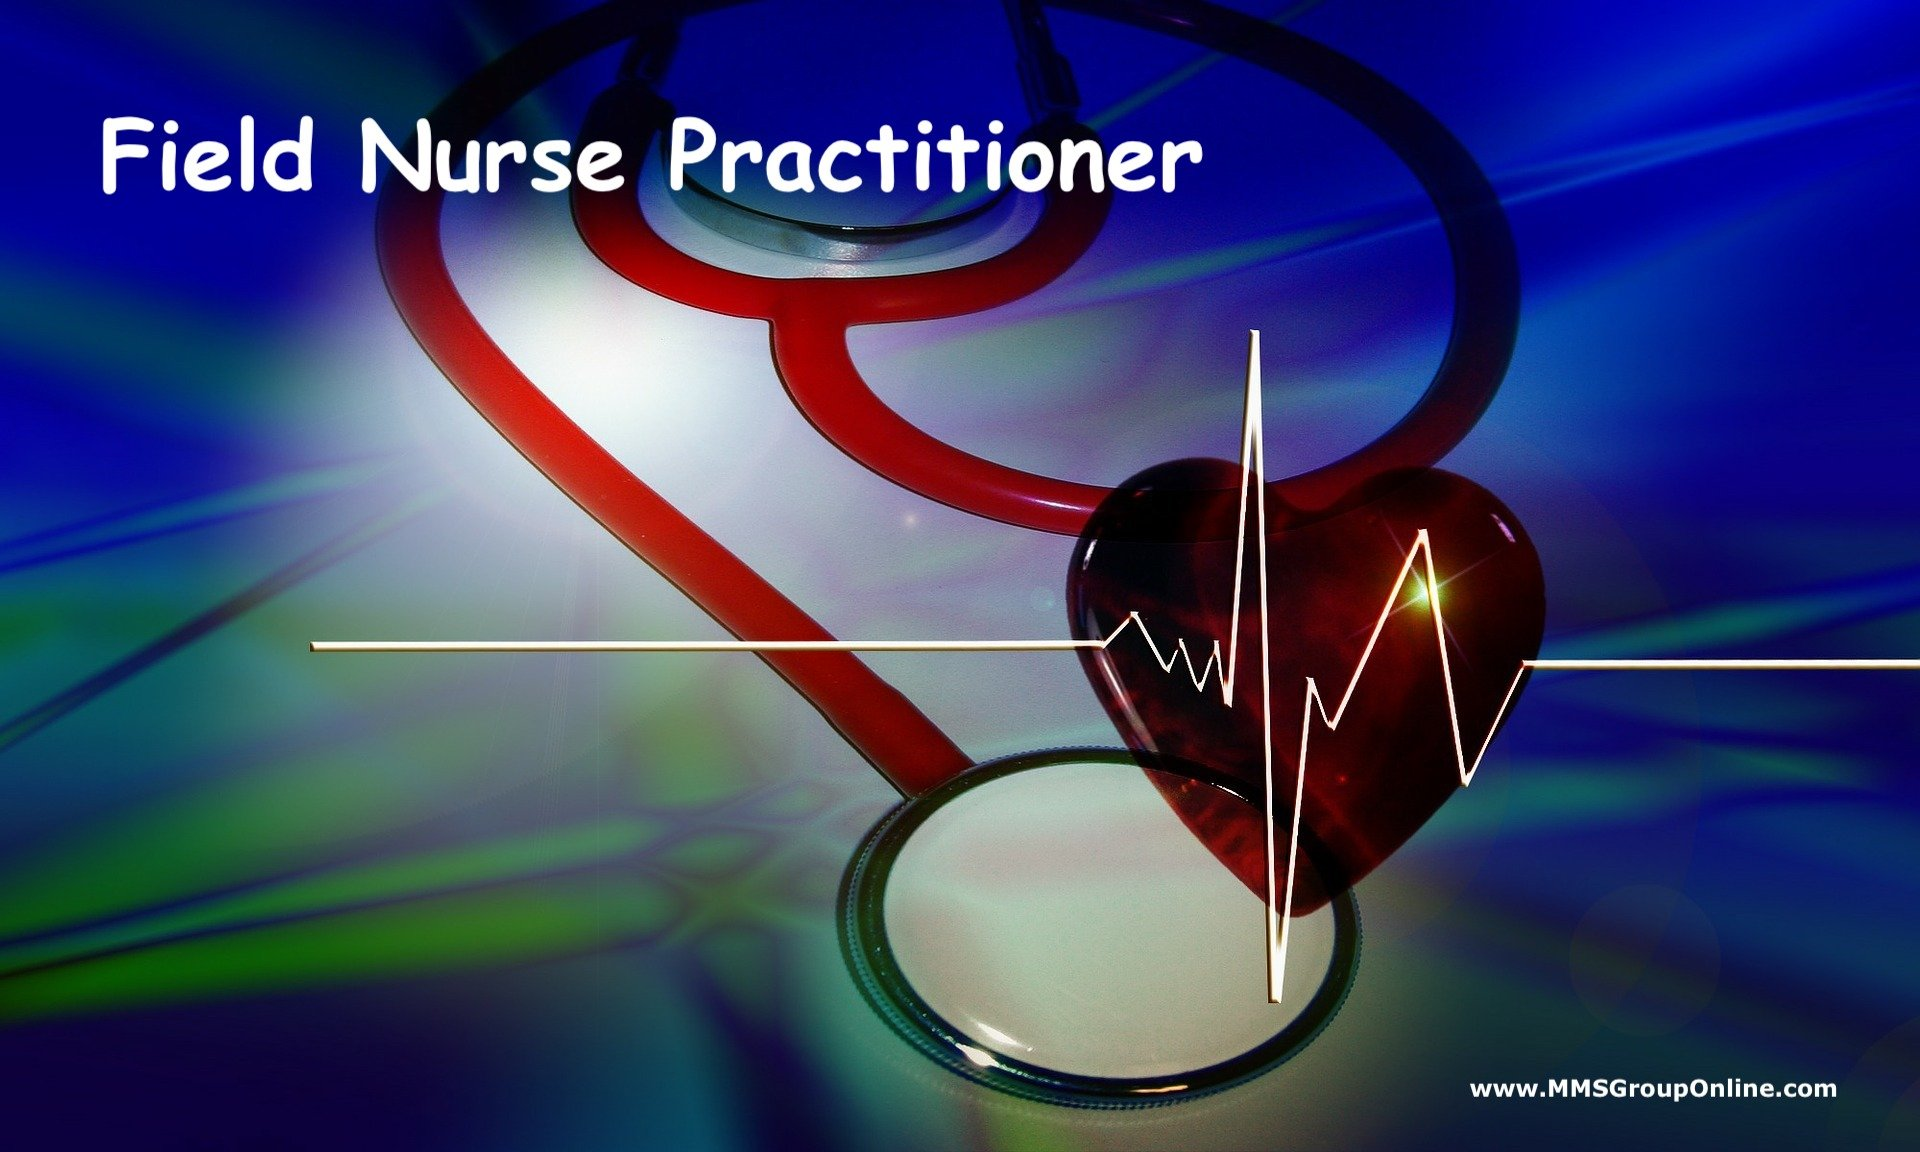 Field Nurse Practitioner Job